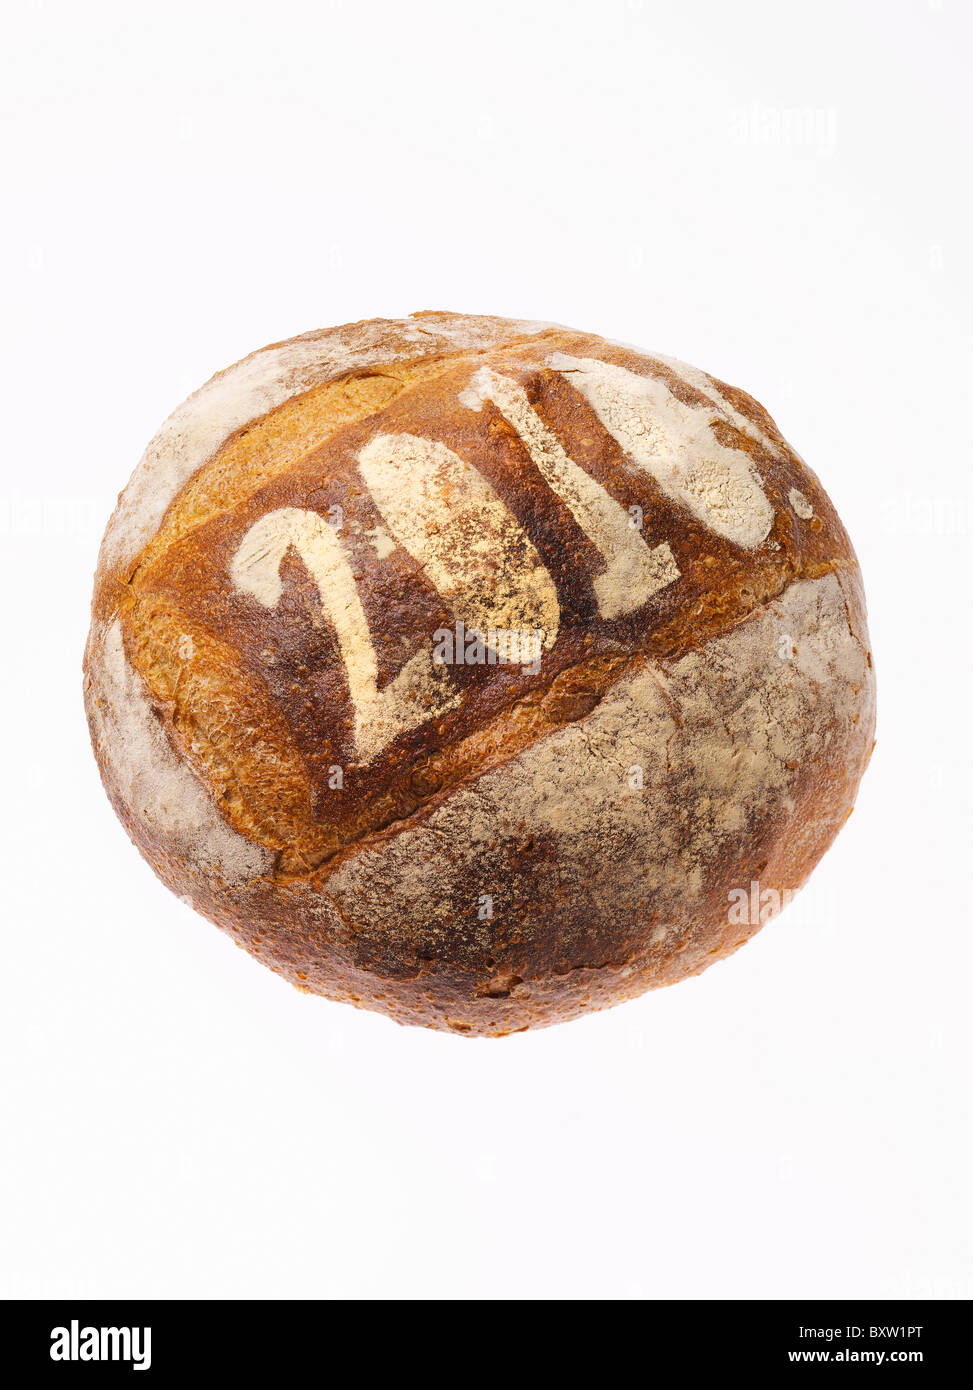 round loaf of bread dusted with the year 2010 - Stock Image